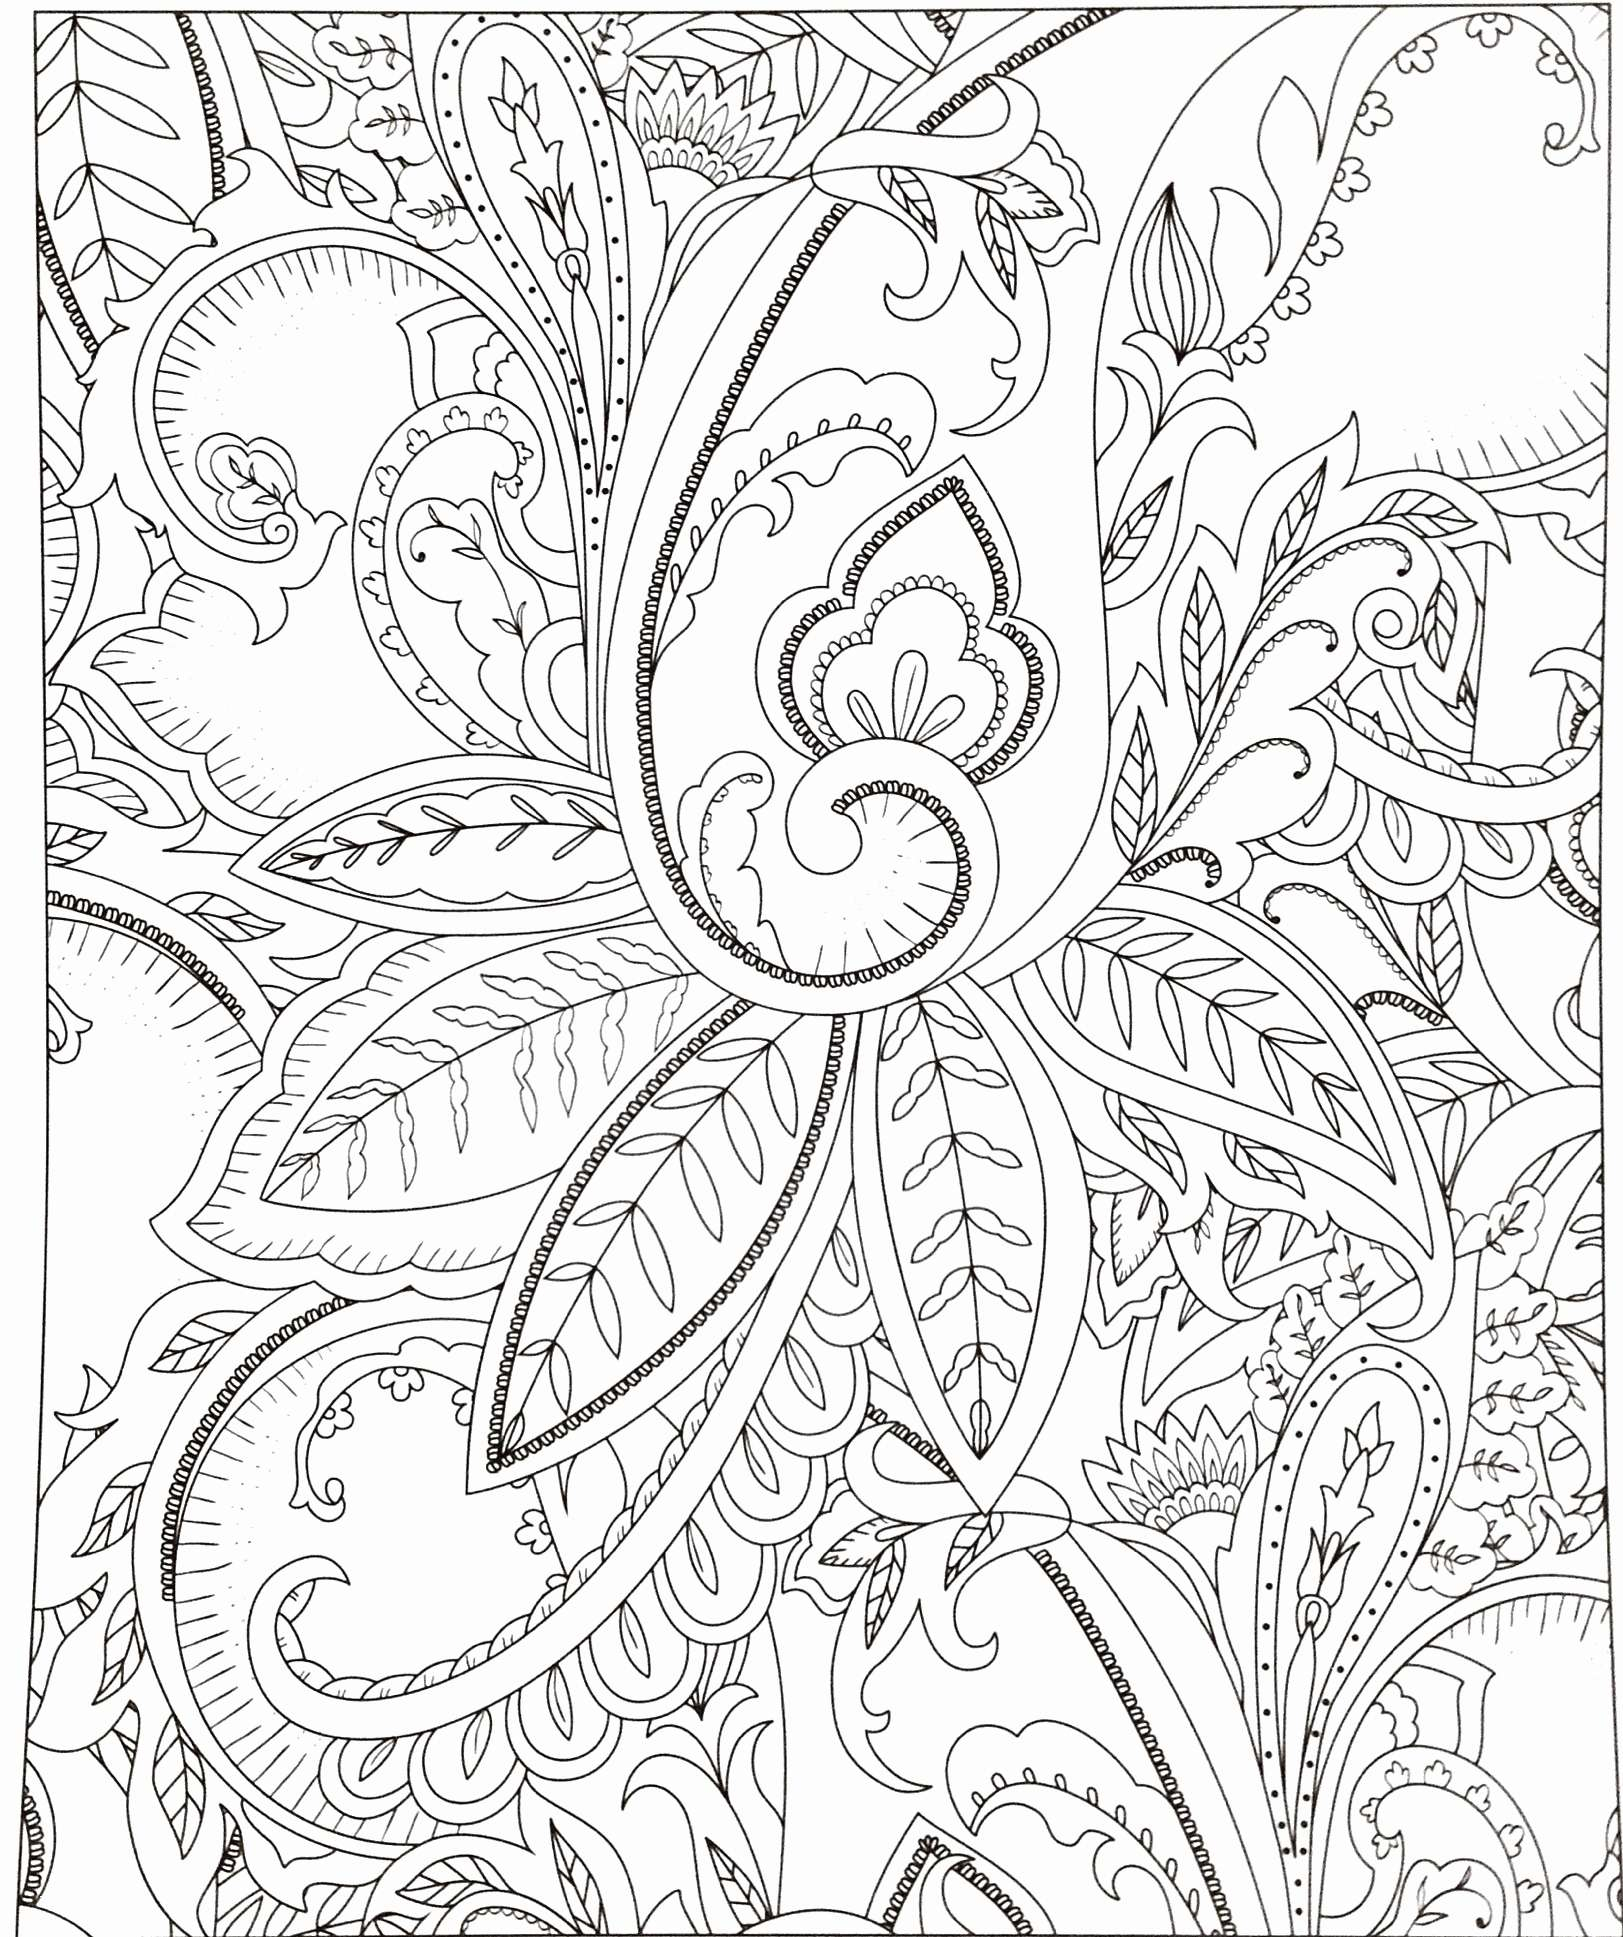 Barbie Superhero Coloring Pages  Collection 17b - Save it to your computer